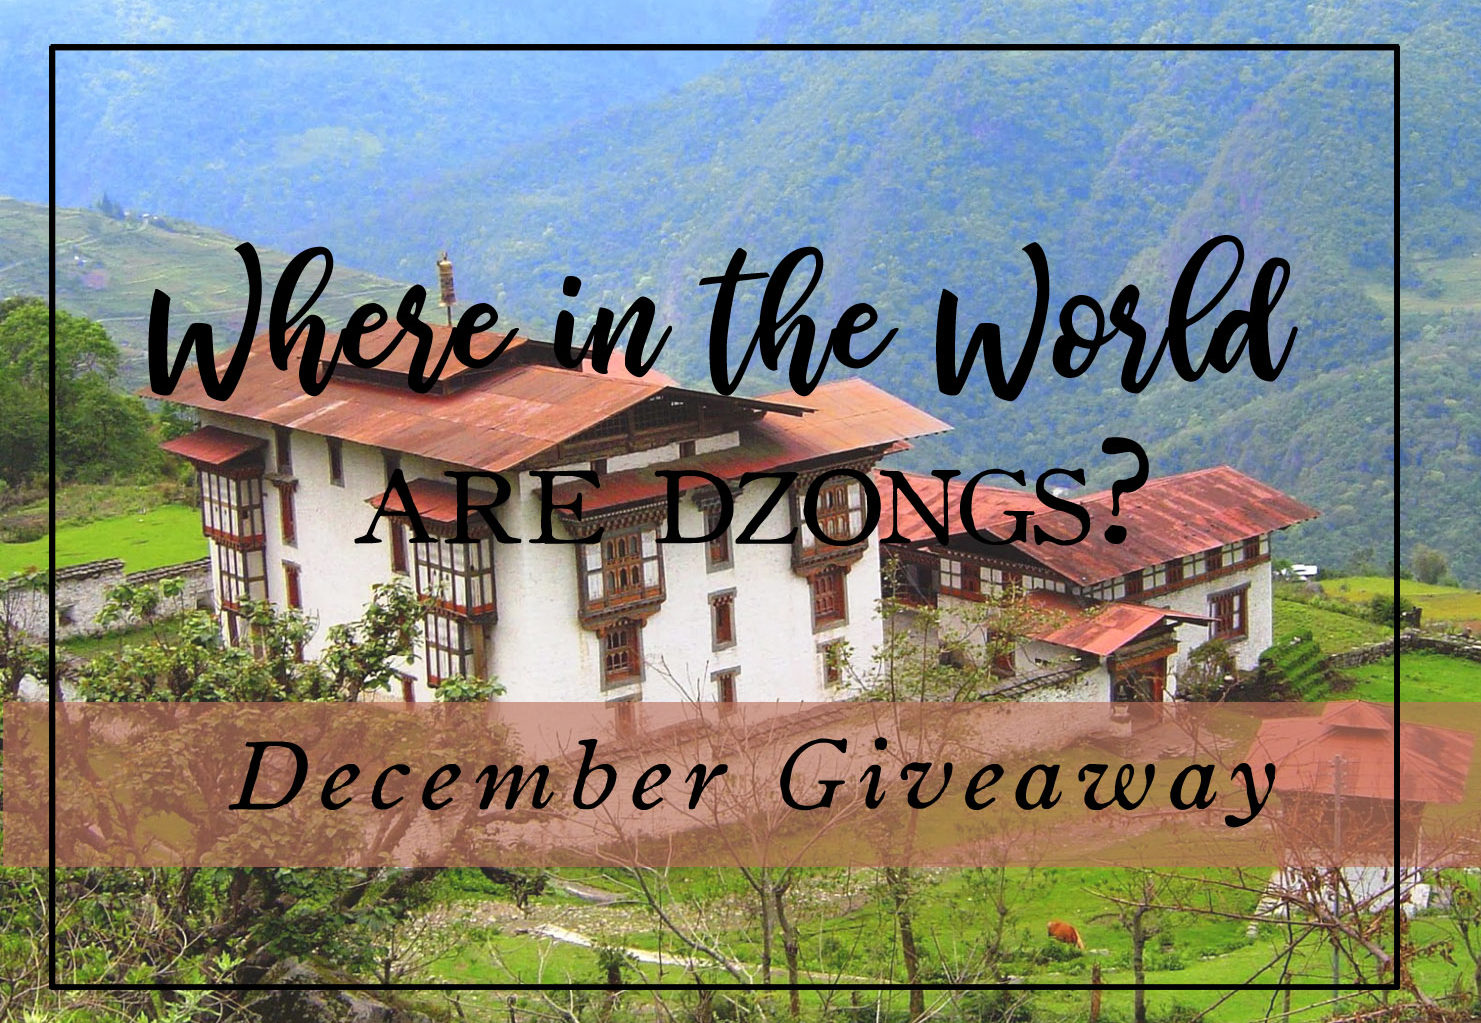 What Country has Dzongs? | Where in The World, December 2019